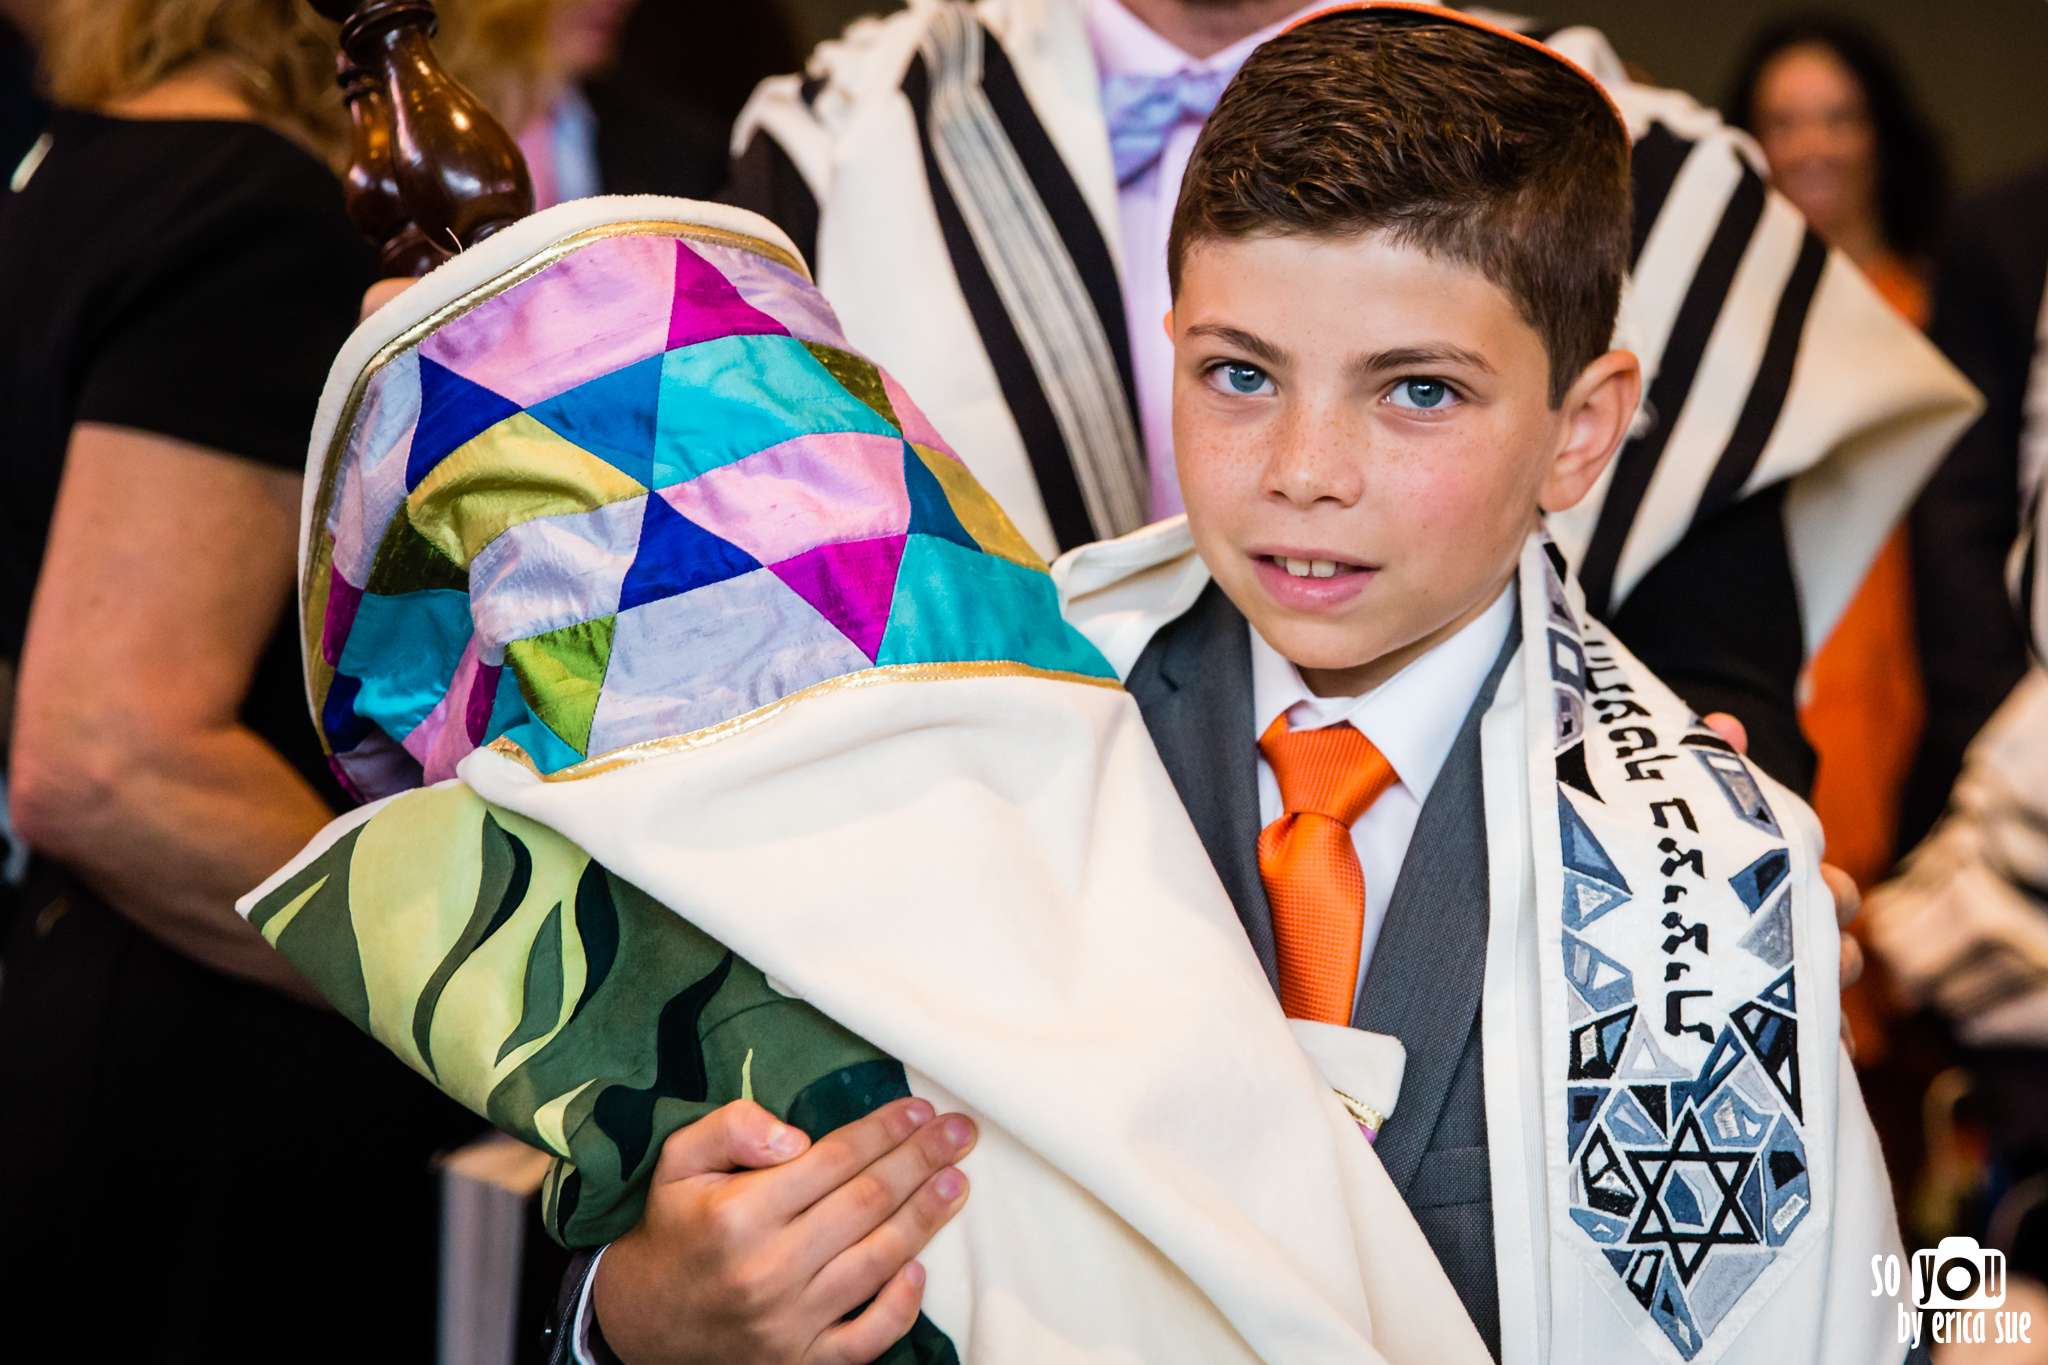 so-you-by-erica-sue-mitzvah-photographer-temple-judea-coral-gables-university-of-miami-hillel-7329.jpg